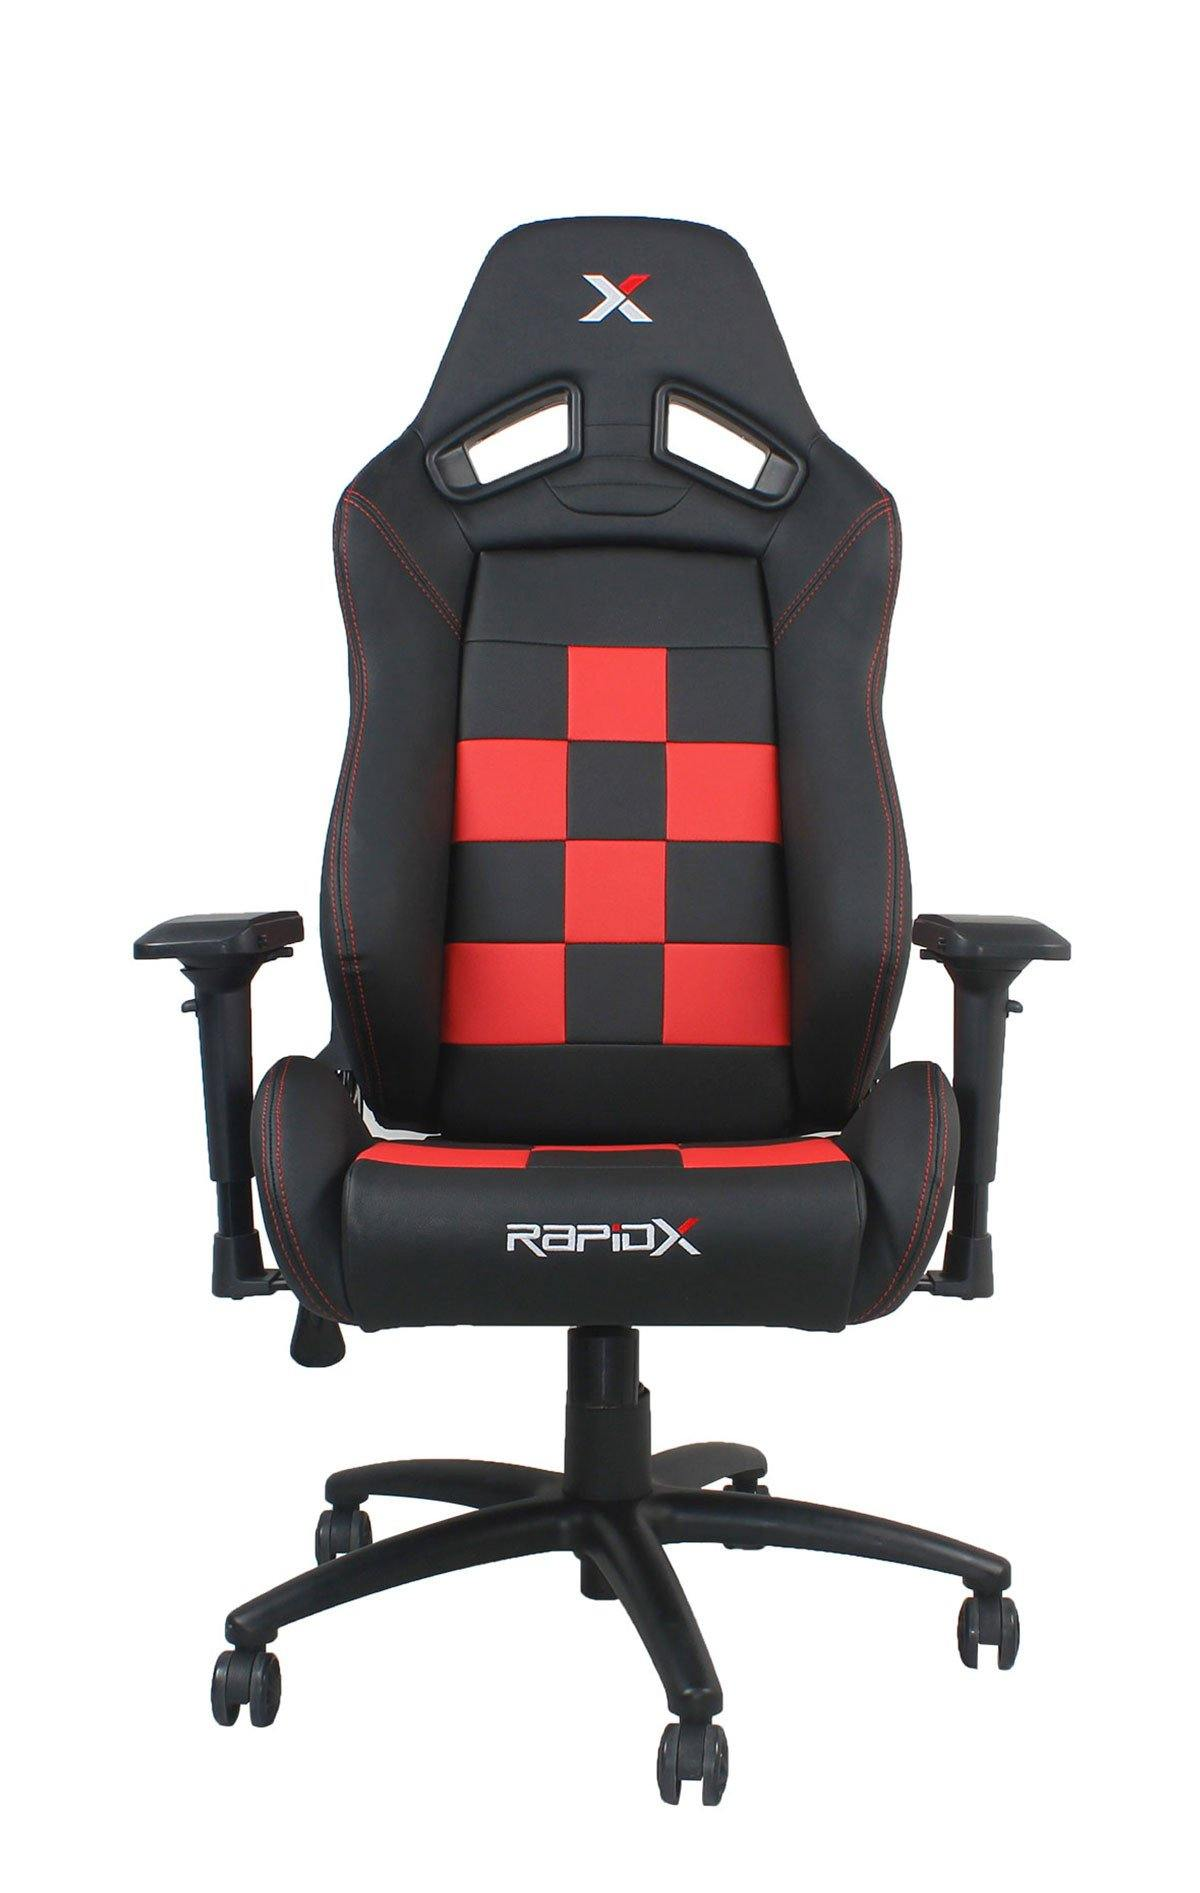 Finish Line Chair Red on Black – RapidX